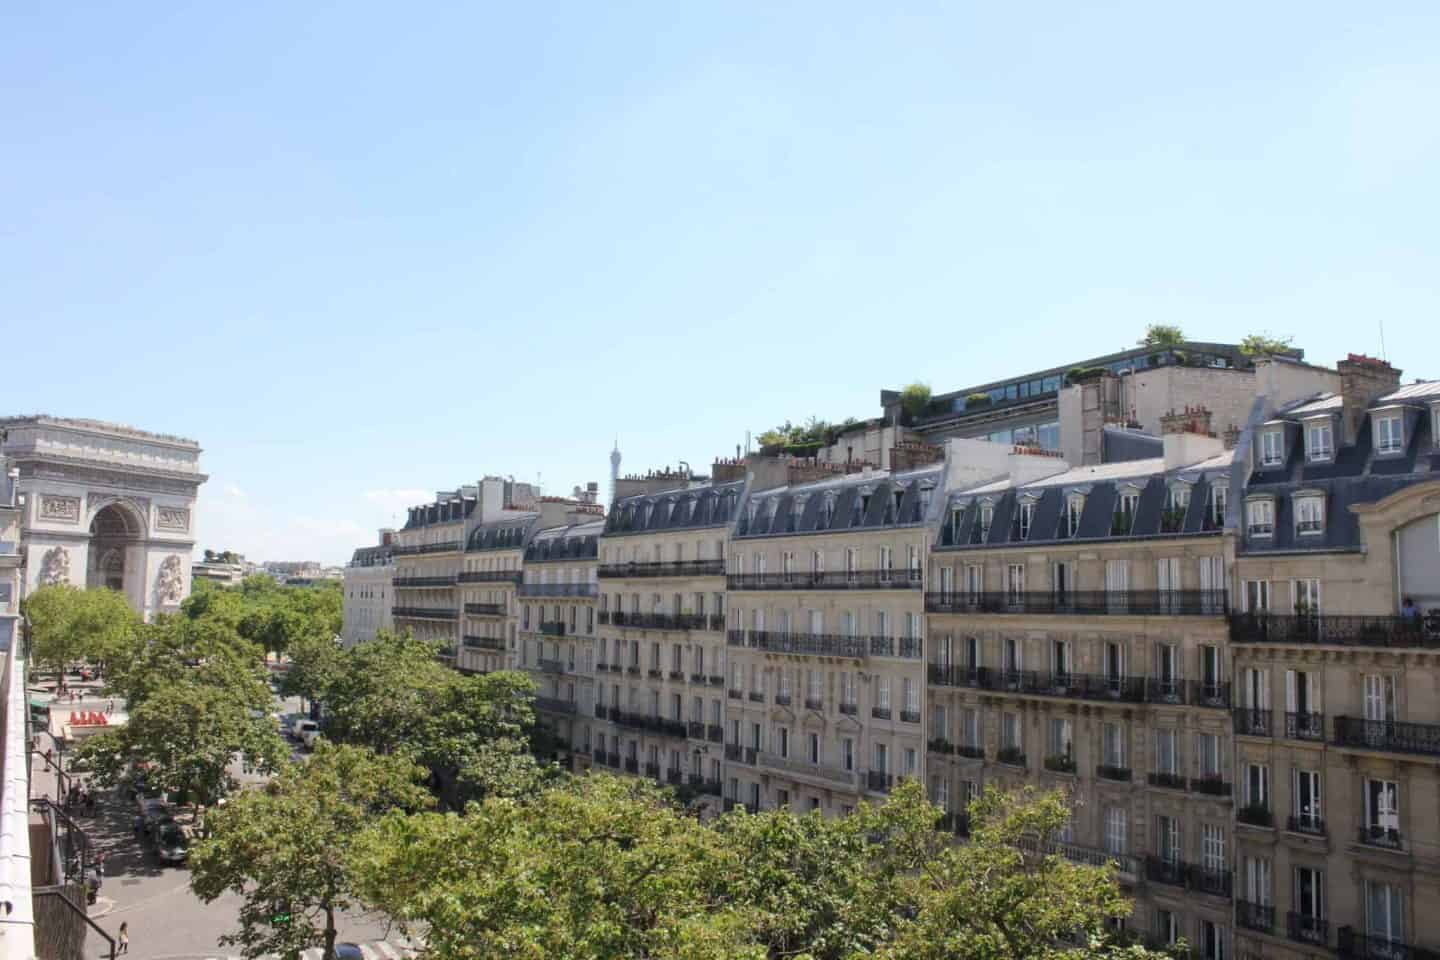 Where to stay in Paris the first time, Which arrondissement to stay in Paris, Paris arrondissement guide, Best arrondissement to stay in paris, best place to stay in paris close to everything